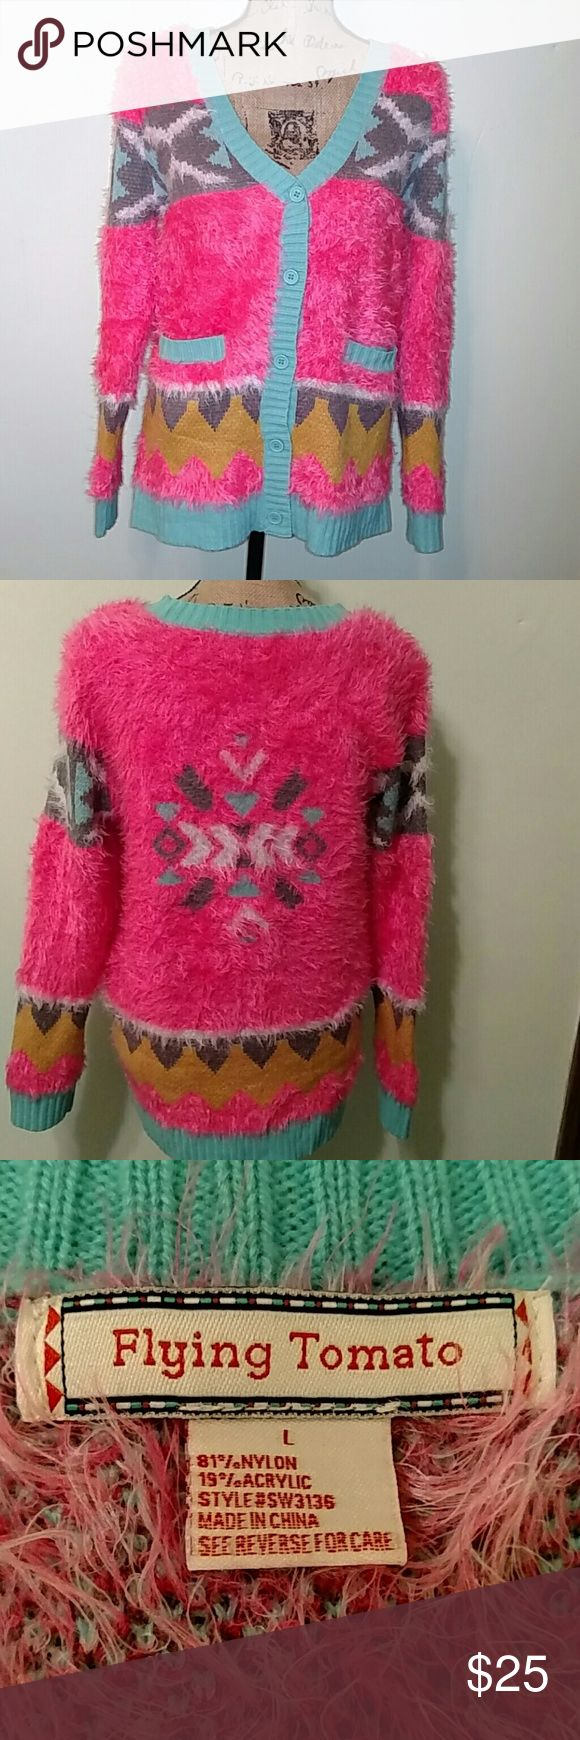 """Flying Tomato Neon Pink Aztec Print Cardigan I ordered this on Posh and sadly it doesn't fit me so I am reposhing. Very soft and cozy cardigan by Flying Tomato. Bust measures 20.5"""" across, length is 26.5"""" and sleeve length is 25"""". Two front pockets. Flying Tomato Sweaters Cardigans"""